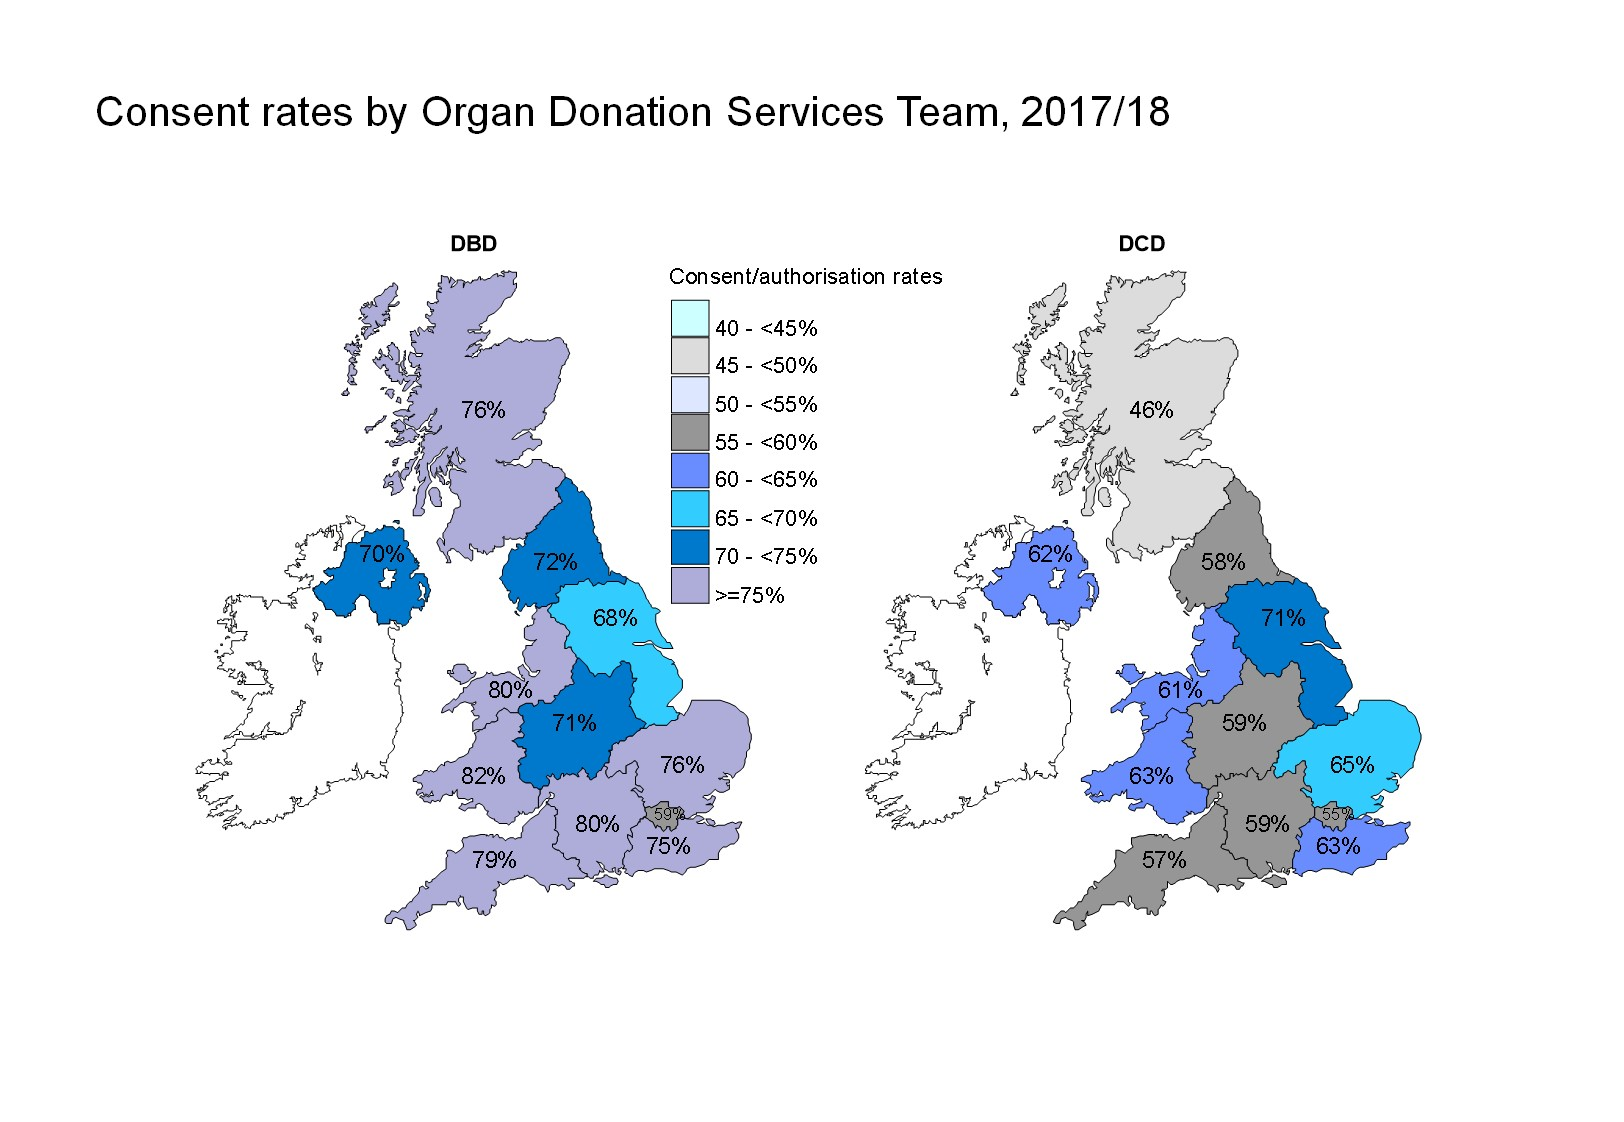 Consent rates by Organ Donation Services Team 2017/18